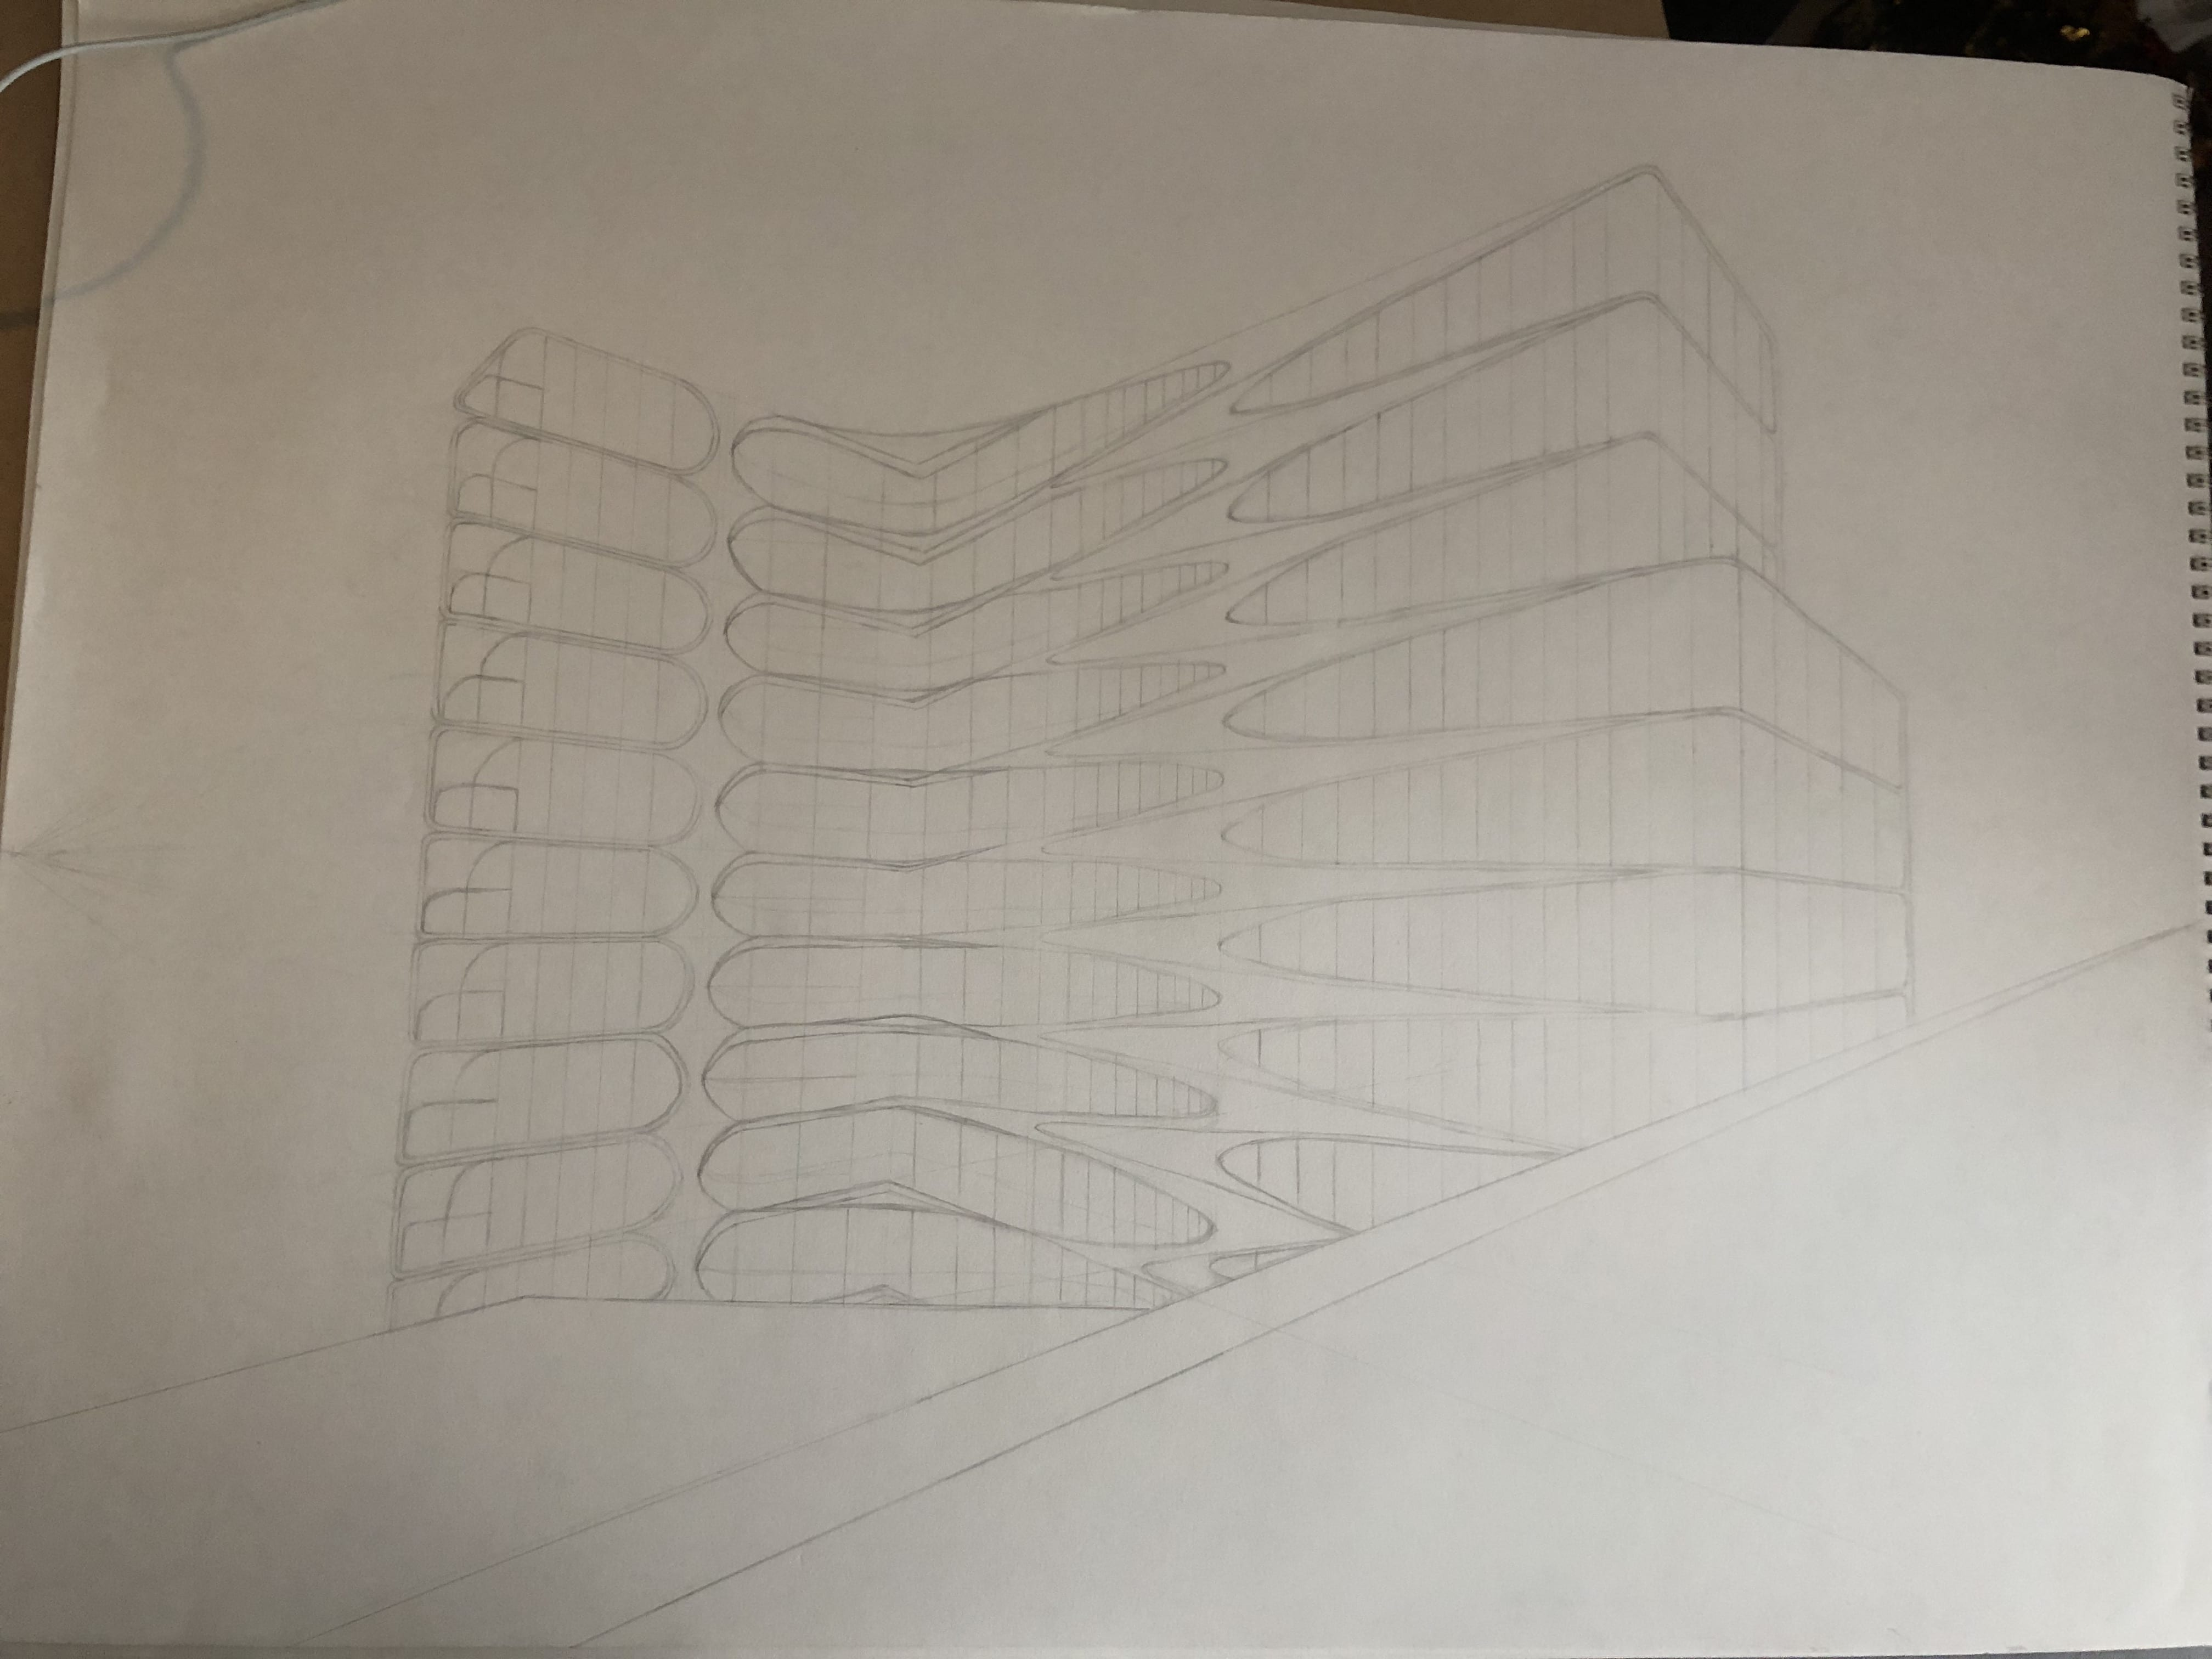 construction of a city: 2 point perspective drawing